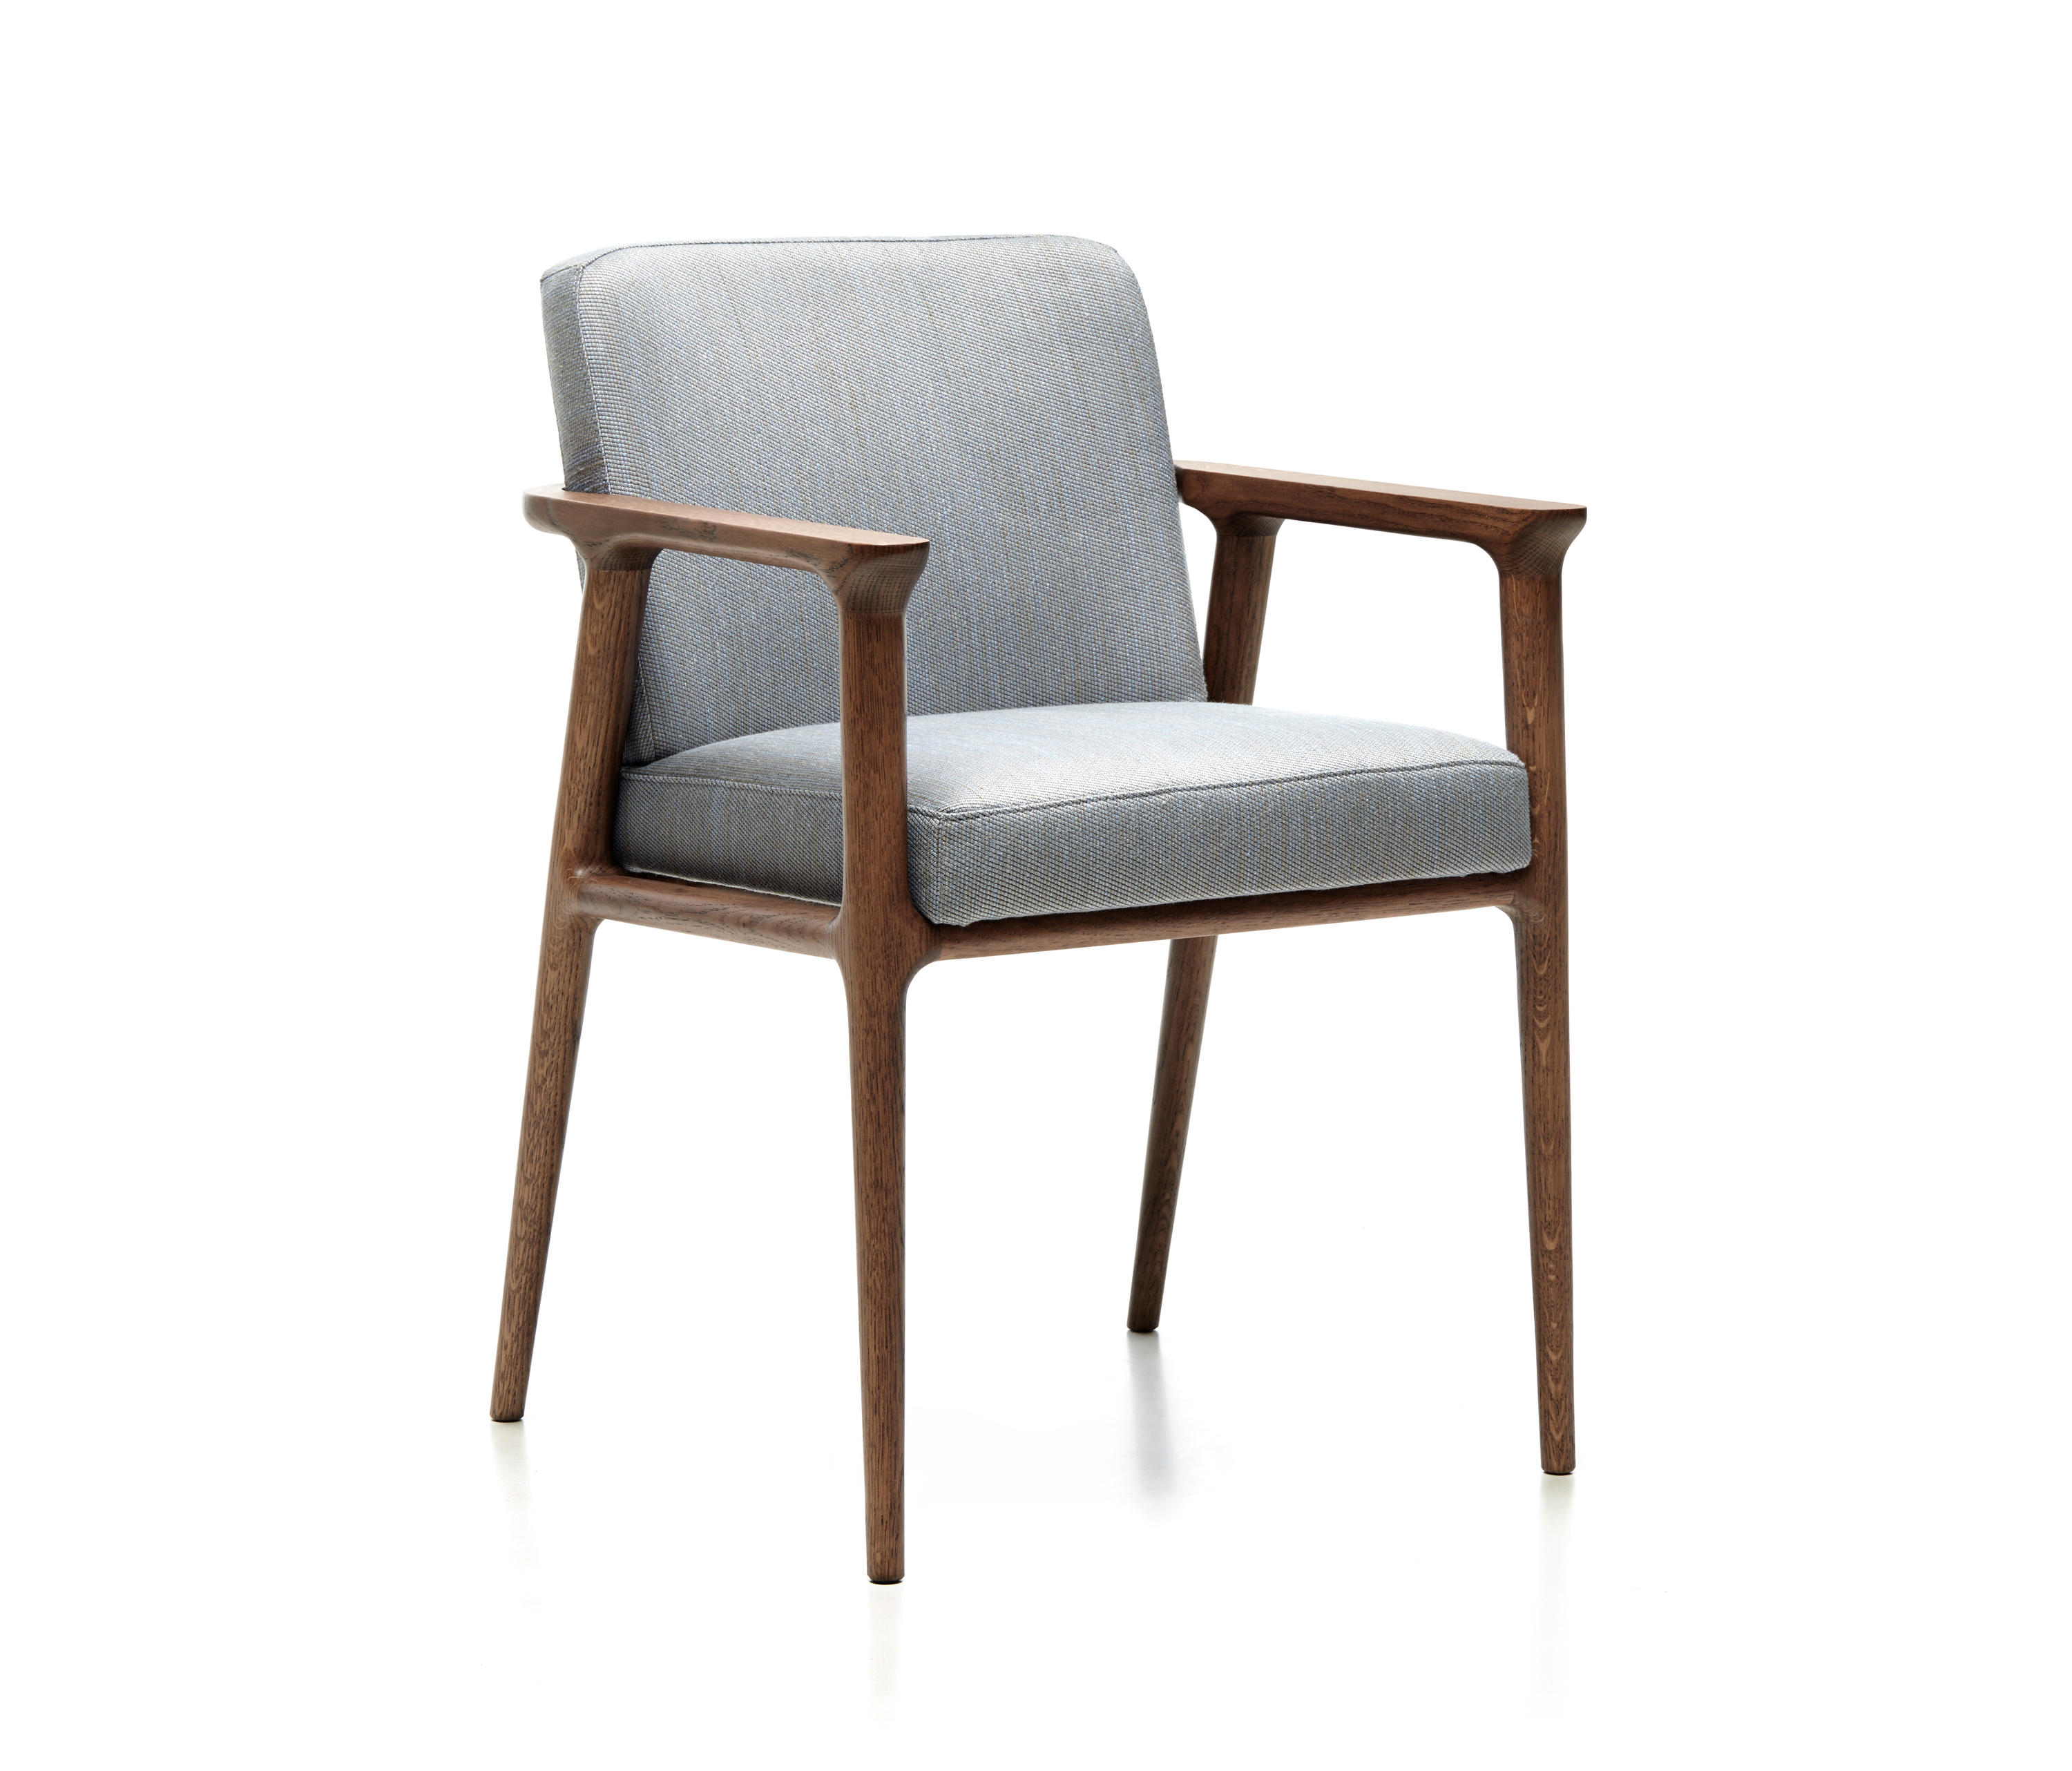 Zio Dining Chair & designer furniture  Architonic